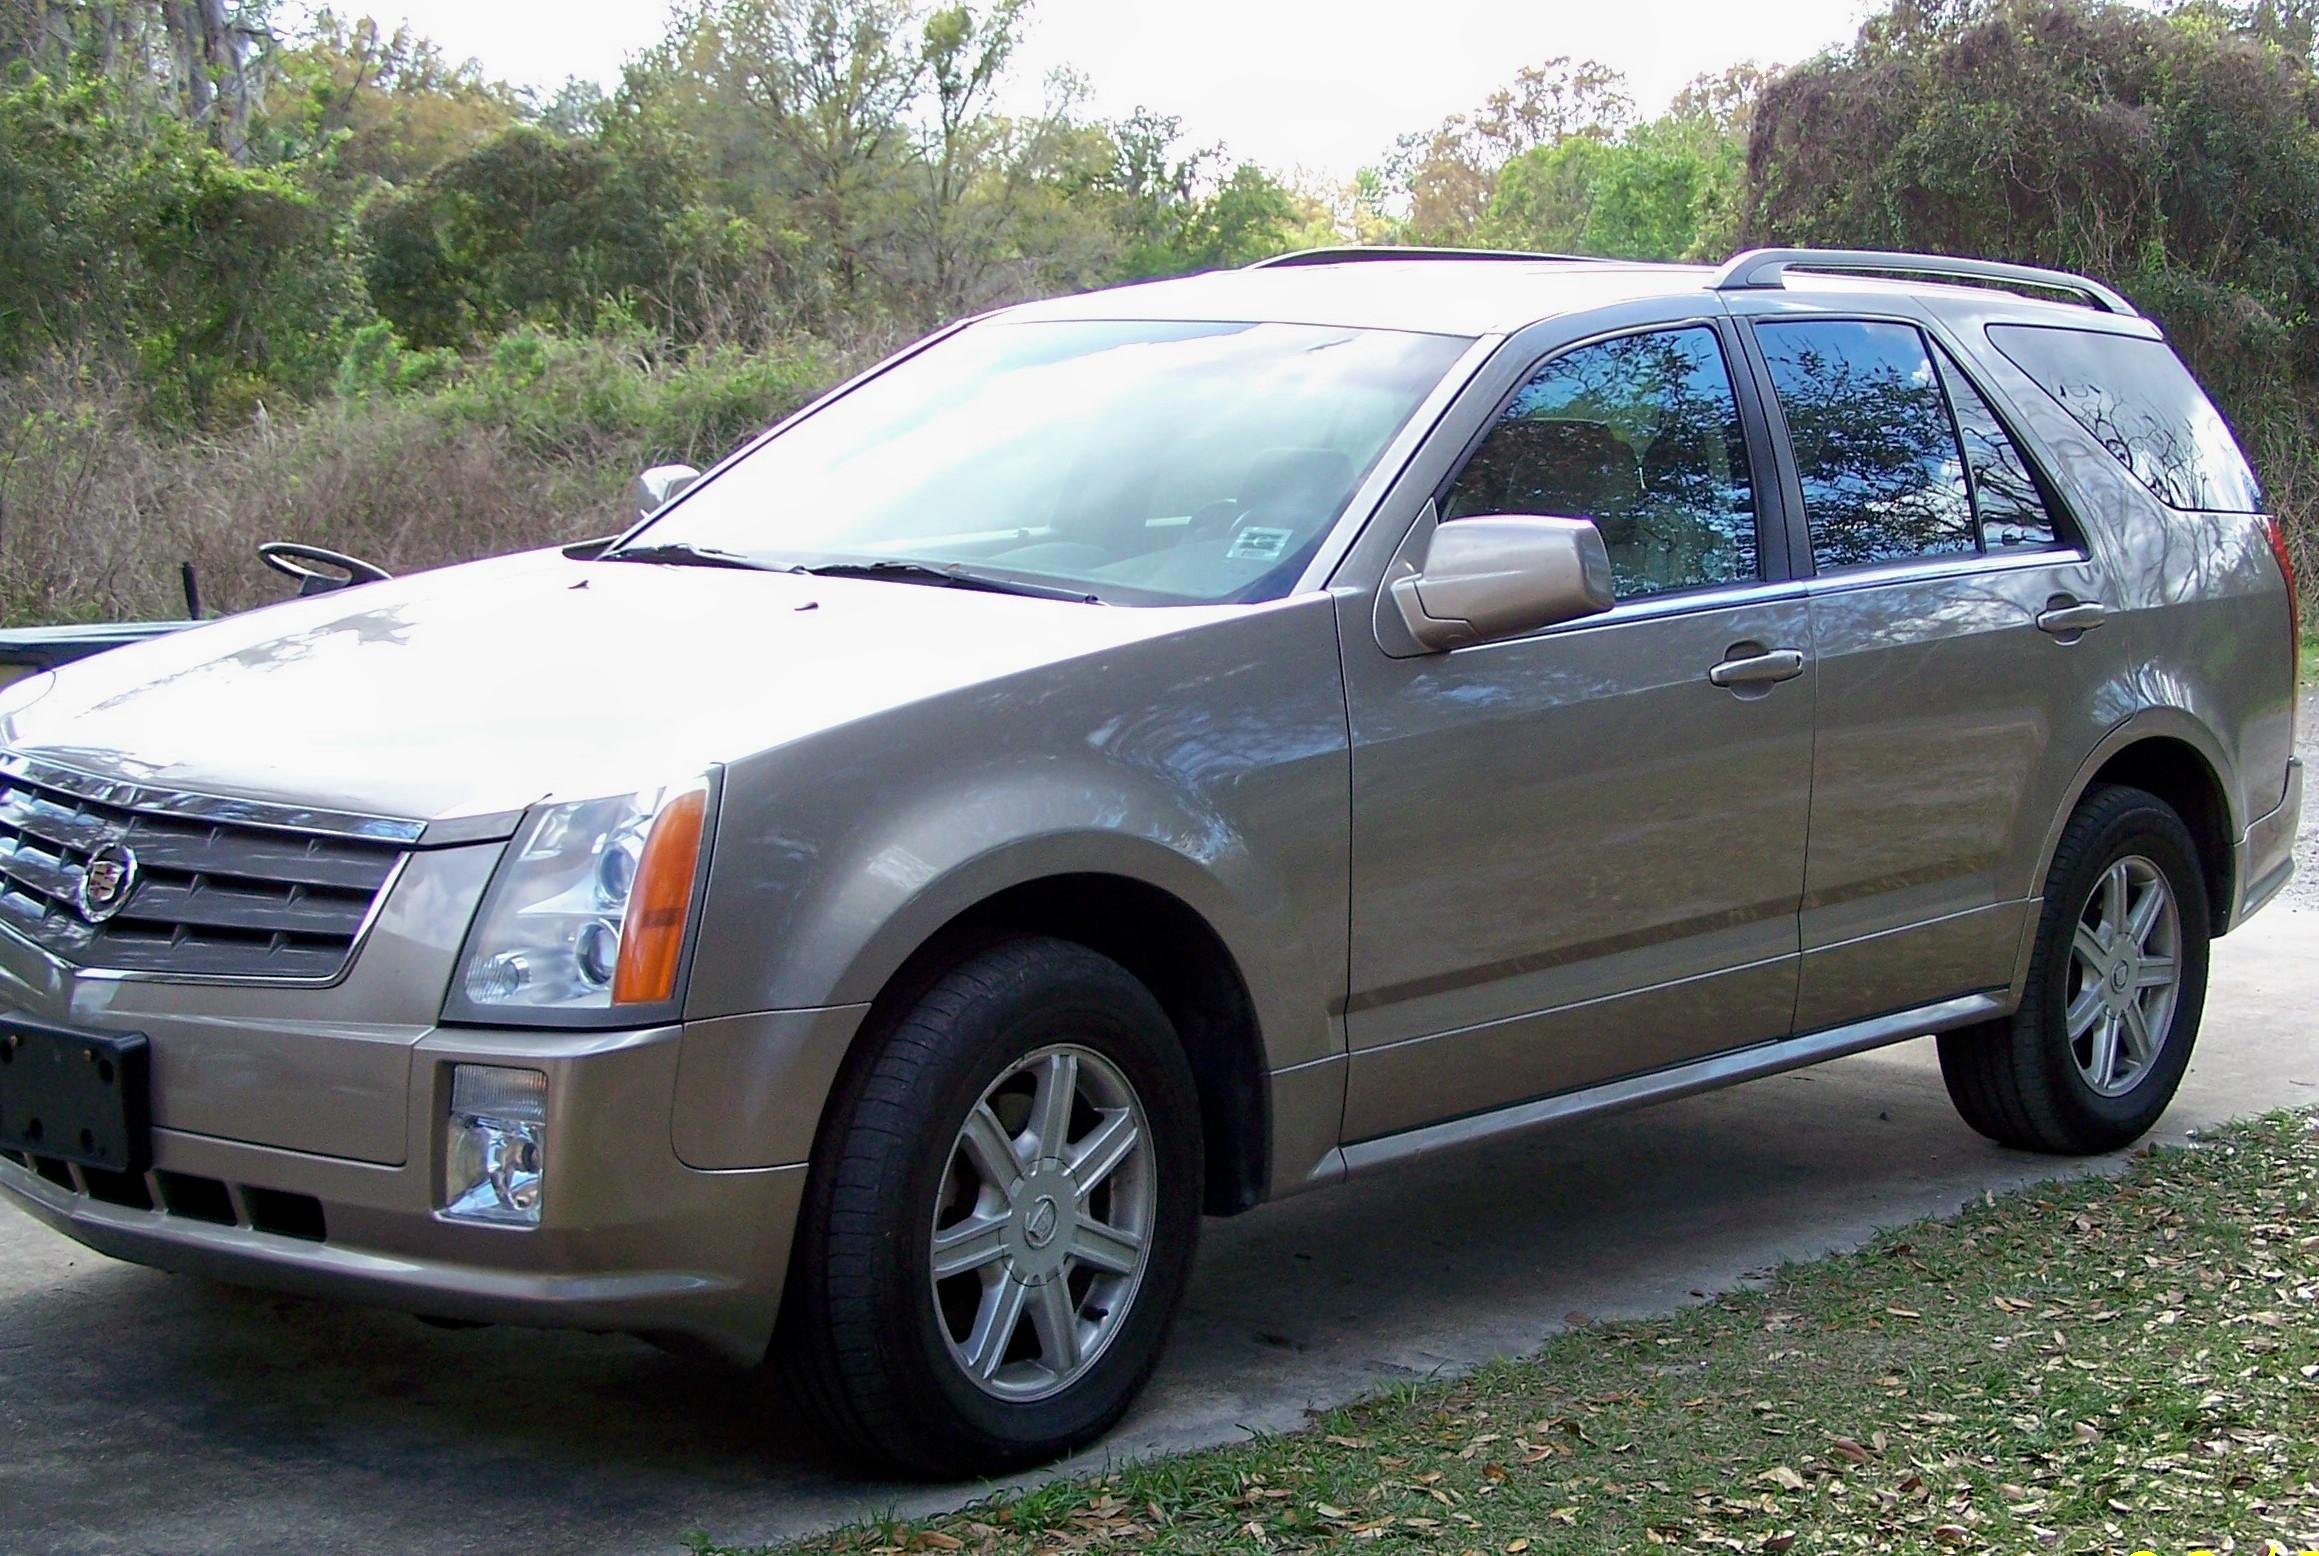 69692251 2004 Cadillac SRXSport Utility 4D Specs, Photos ...